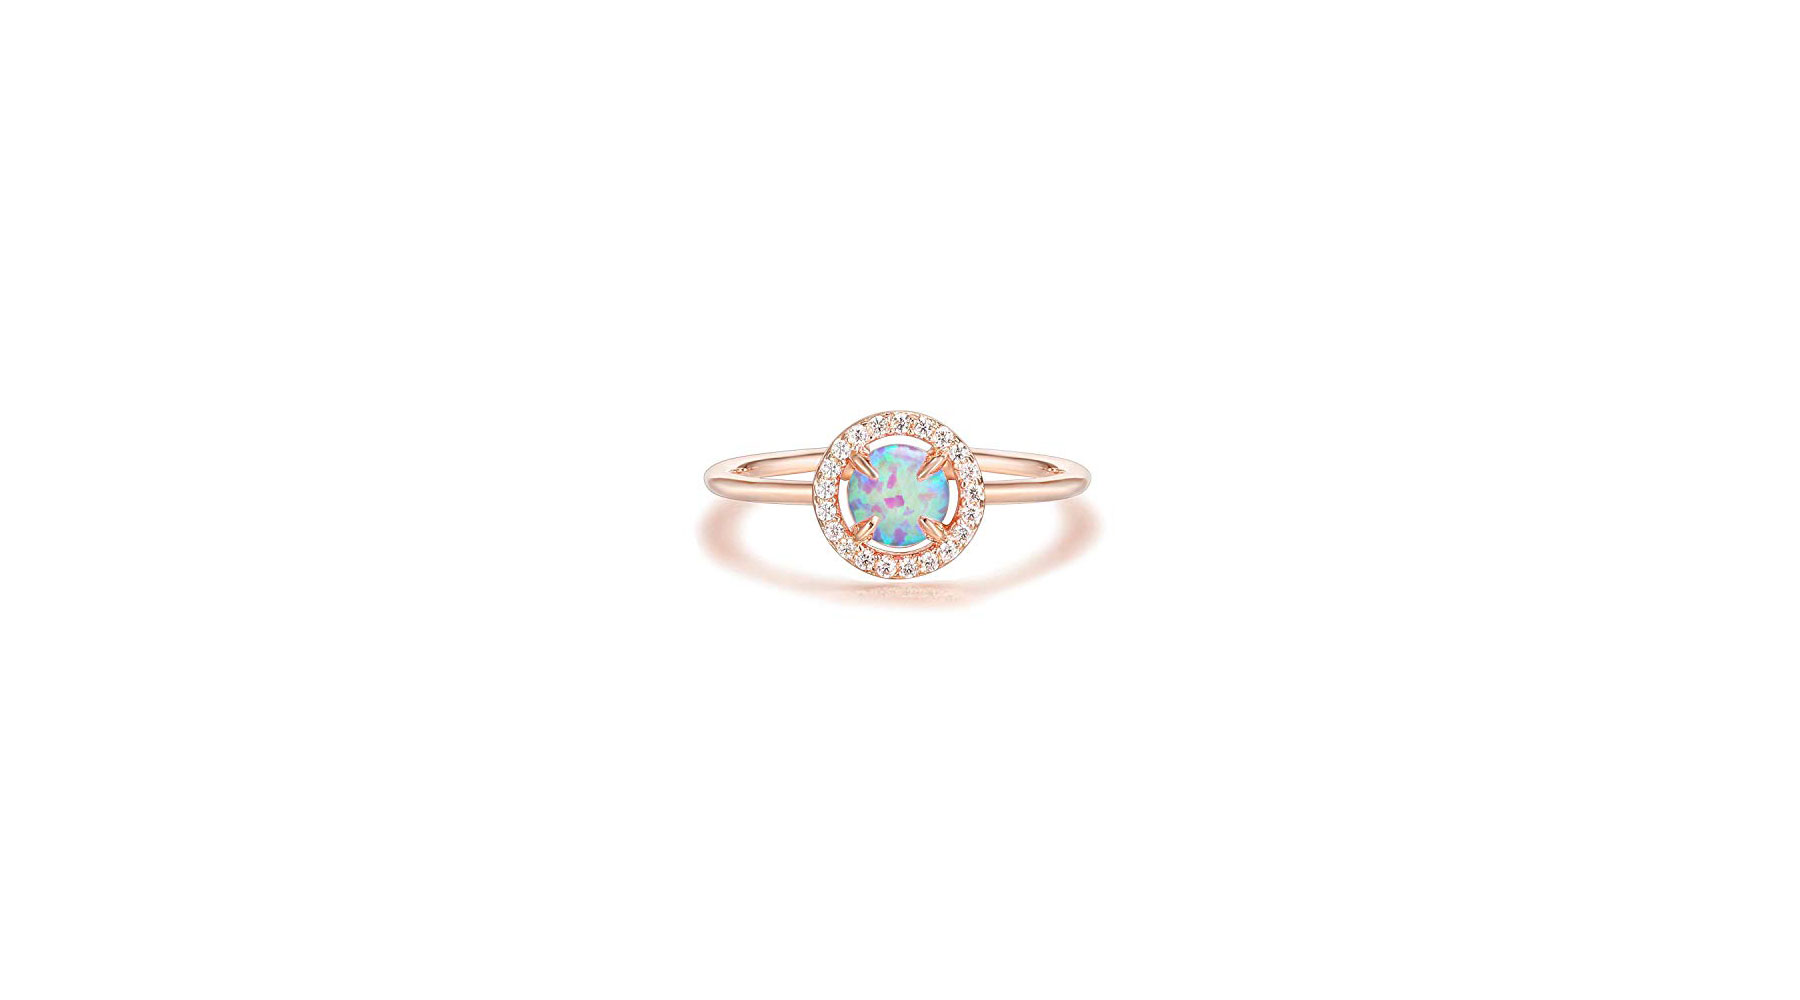 PAVOI 14K Gold Plated Opal Ring